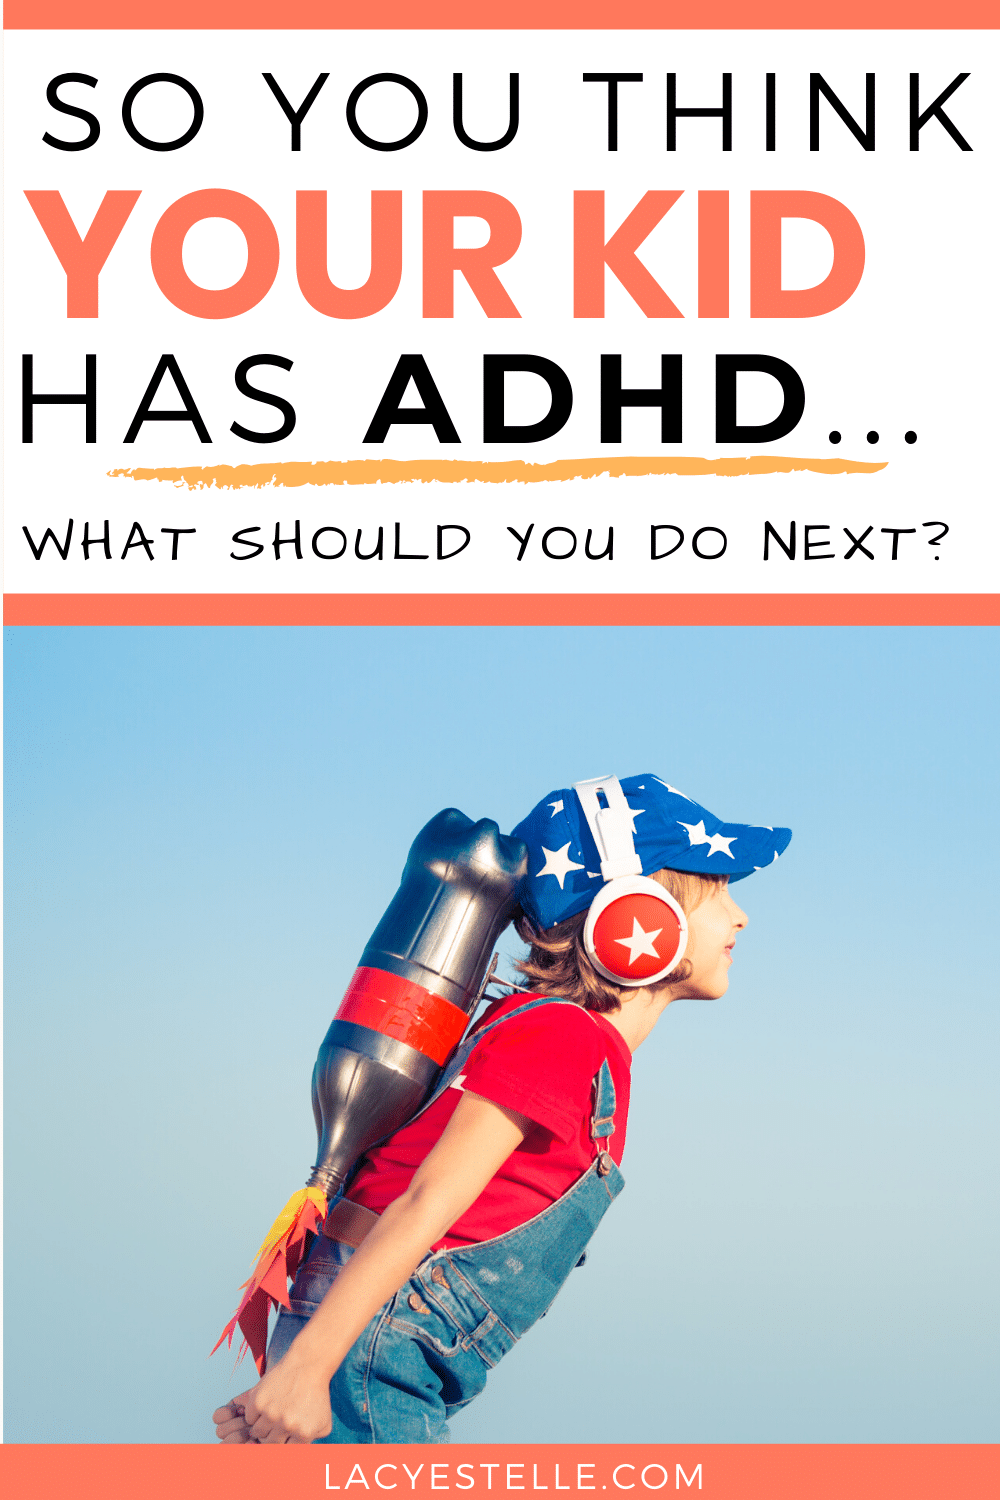 You think your child has ADHD, what do you do next? Should I get my child an ADHD diagnosis? How can I help my child if I think they have ADHD?